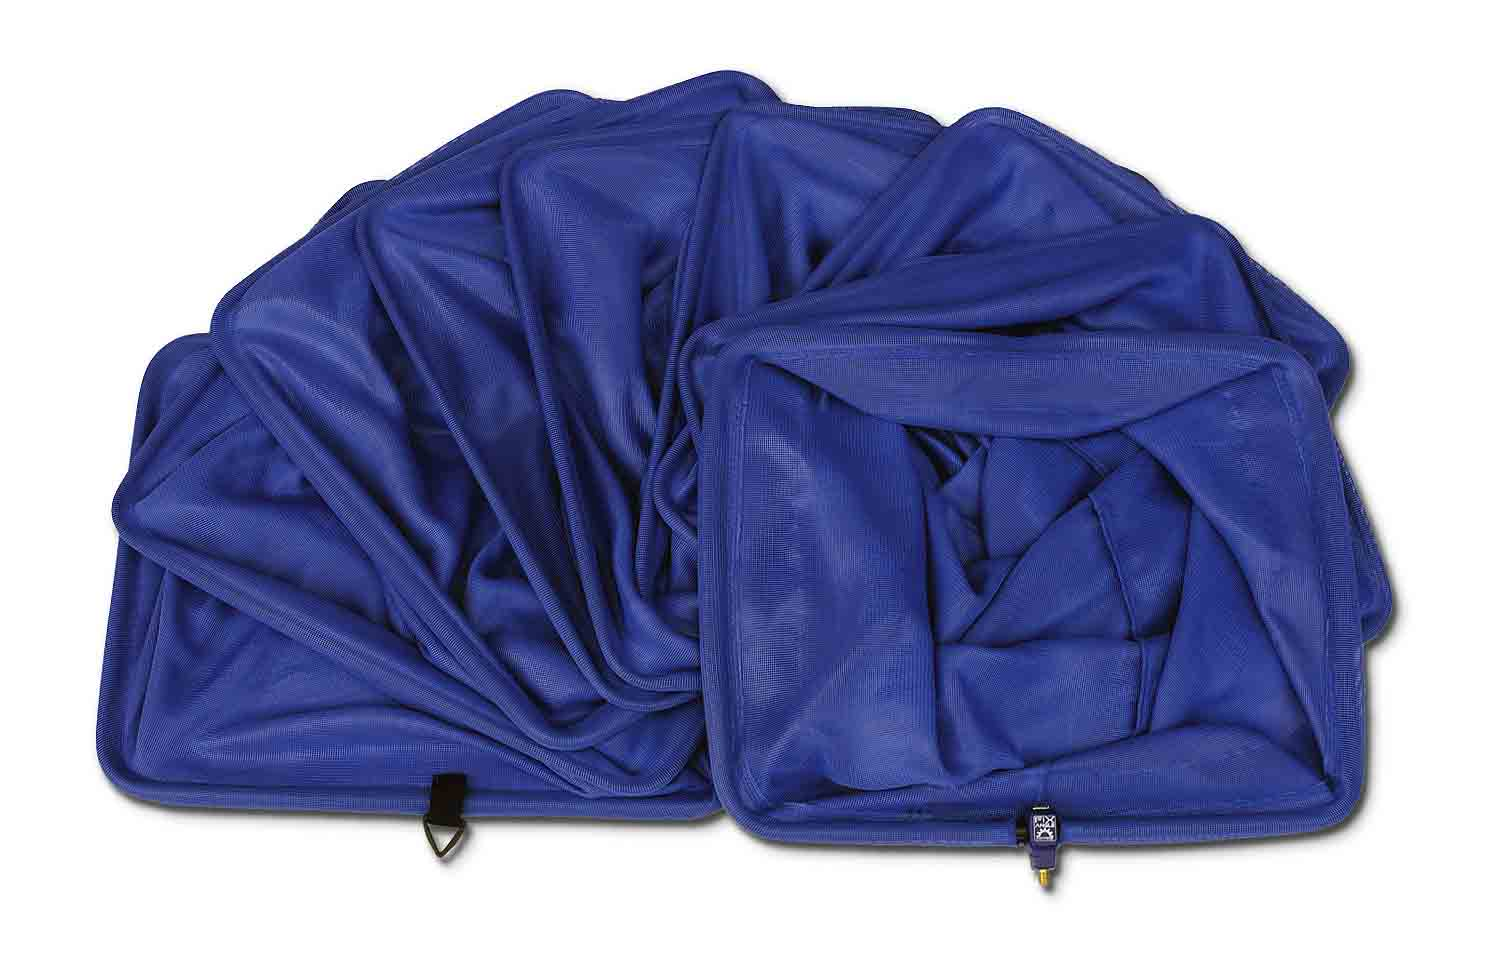 Preston Innovations Blue Carp Keepnet